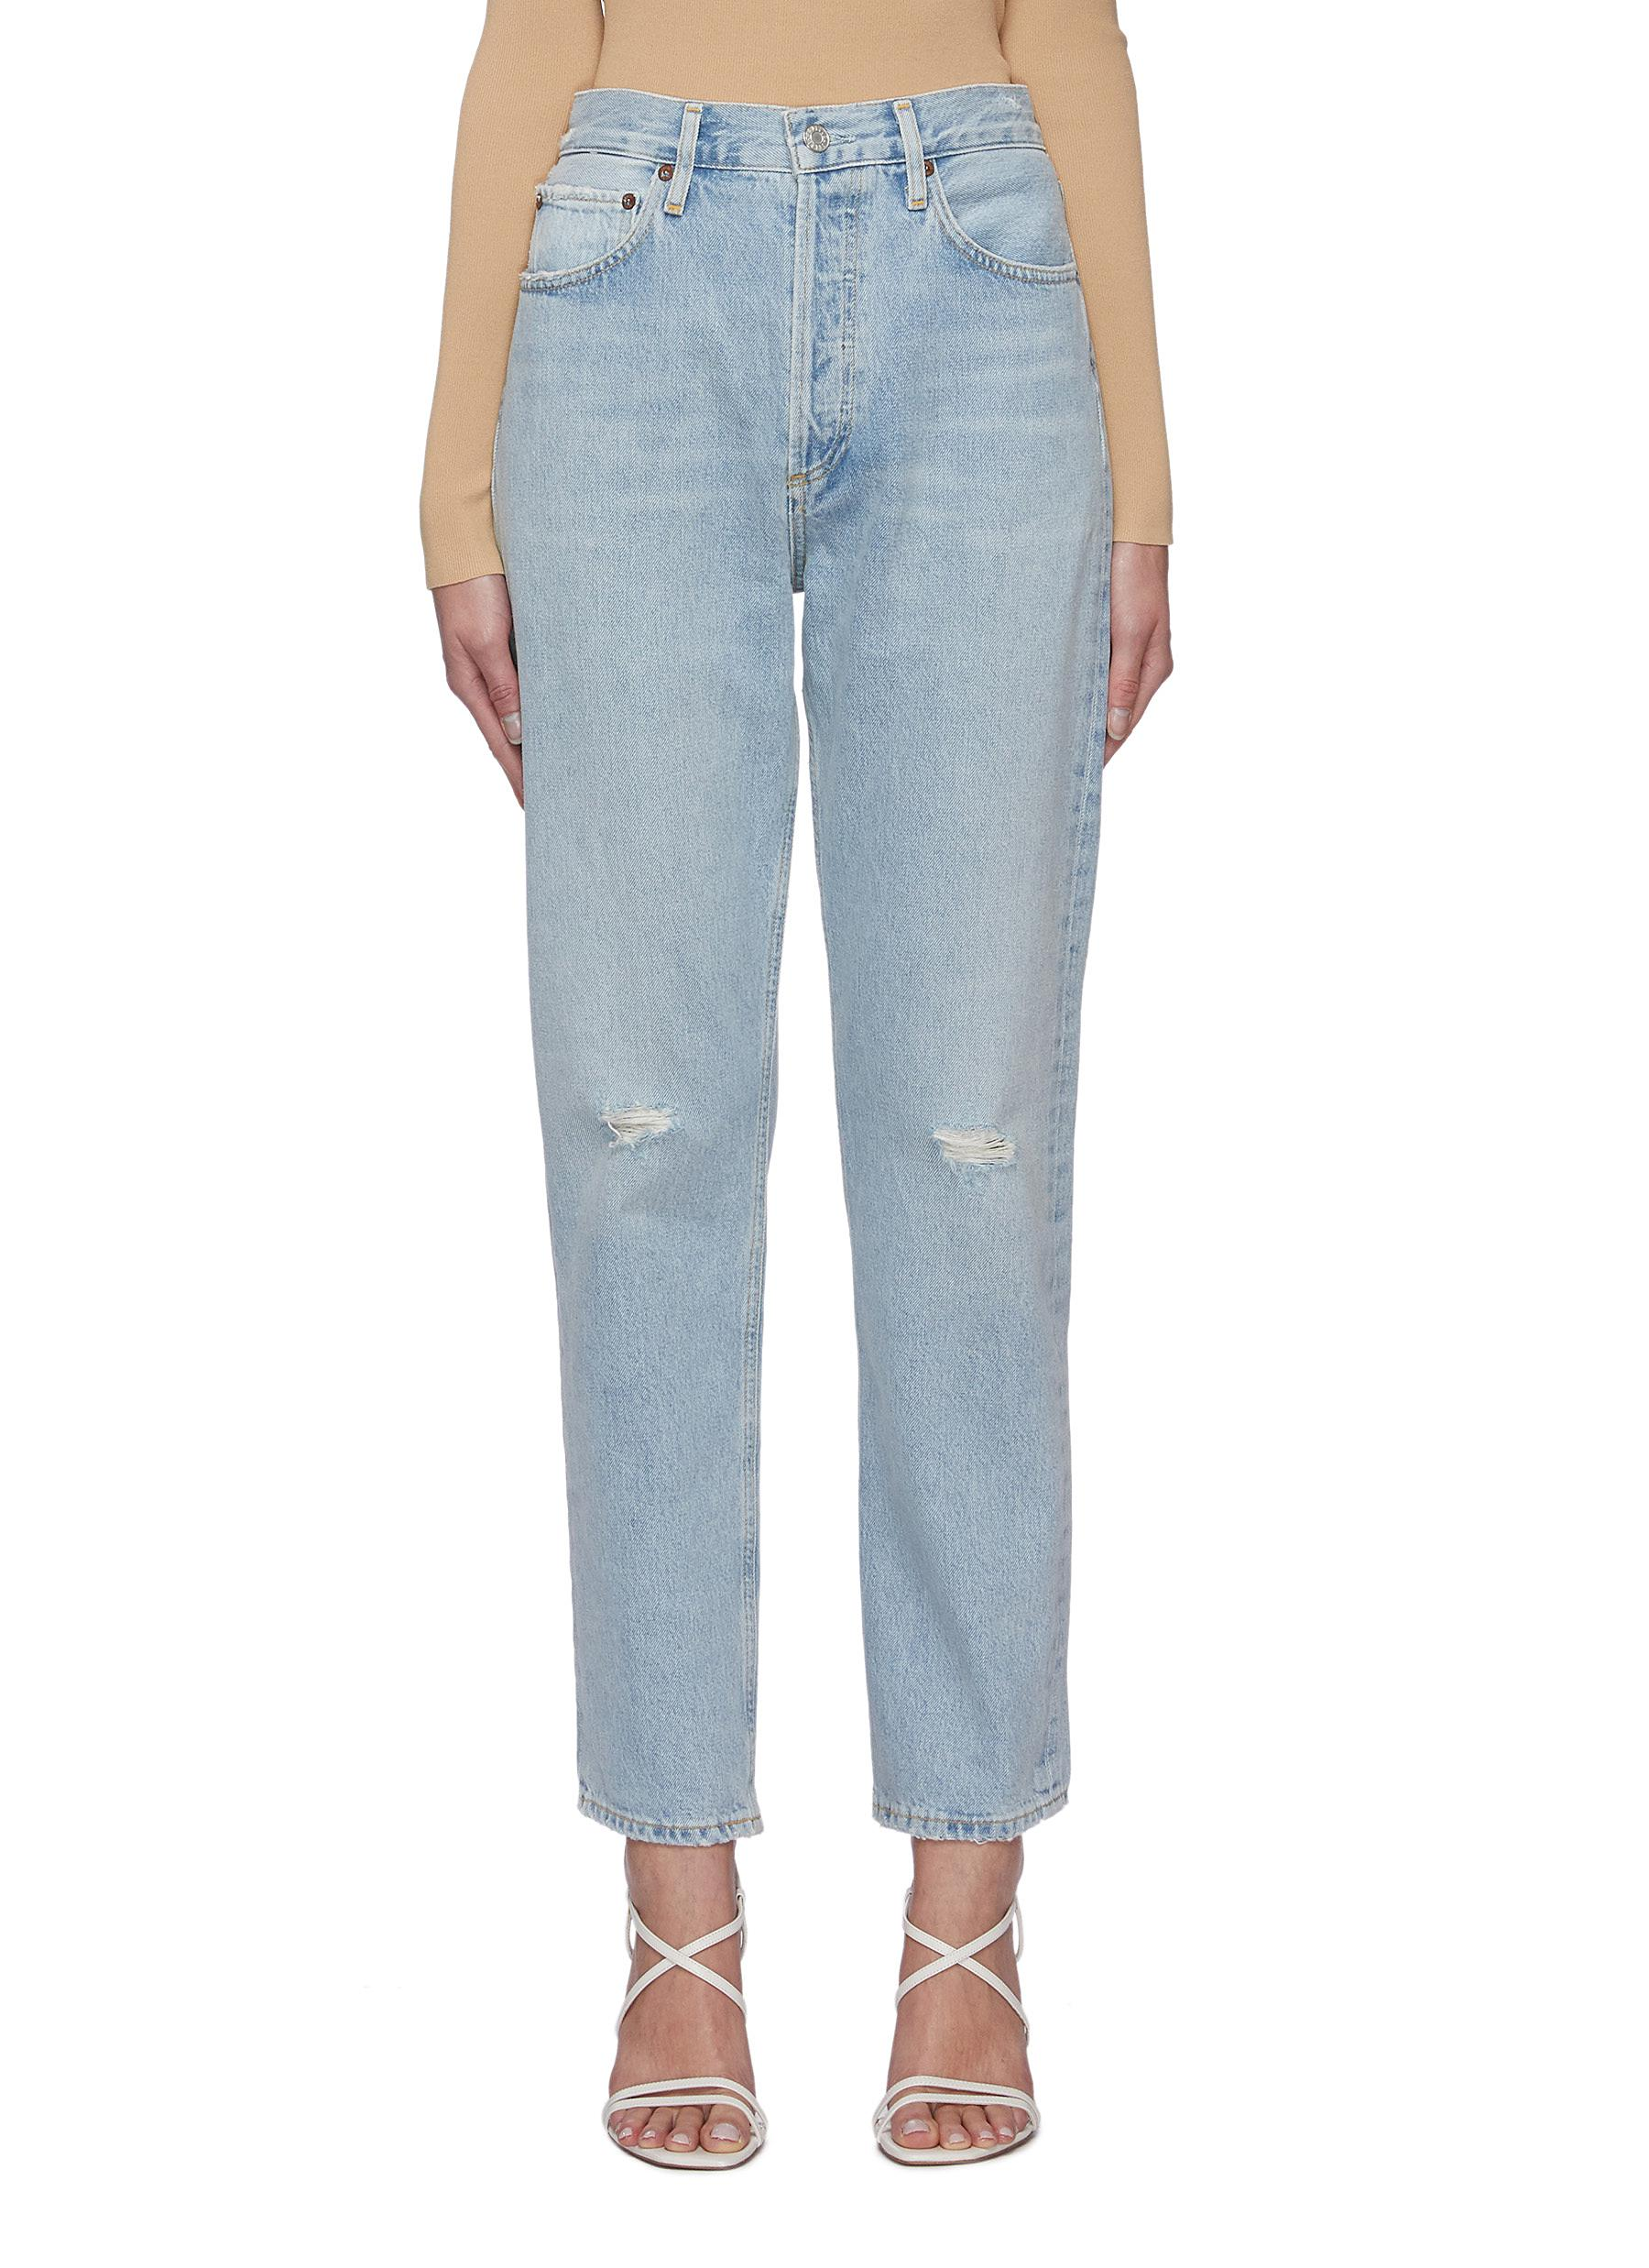 Distressed Detail High Rise Jeans